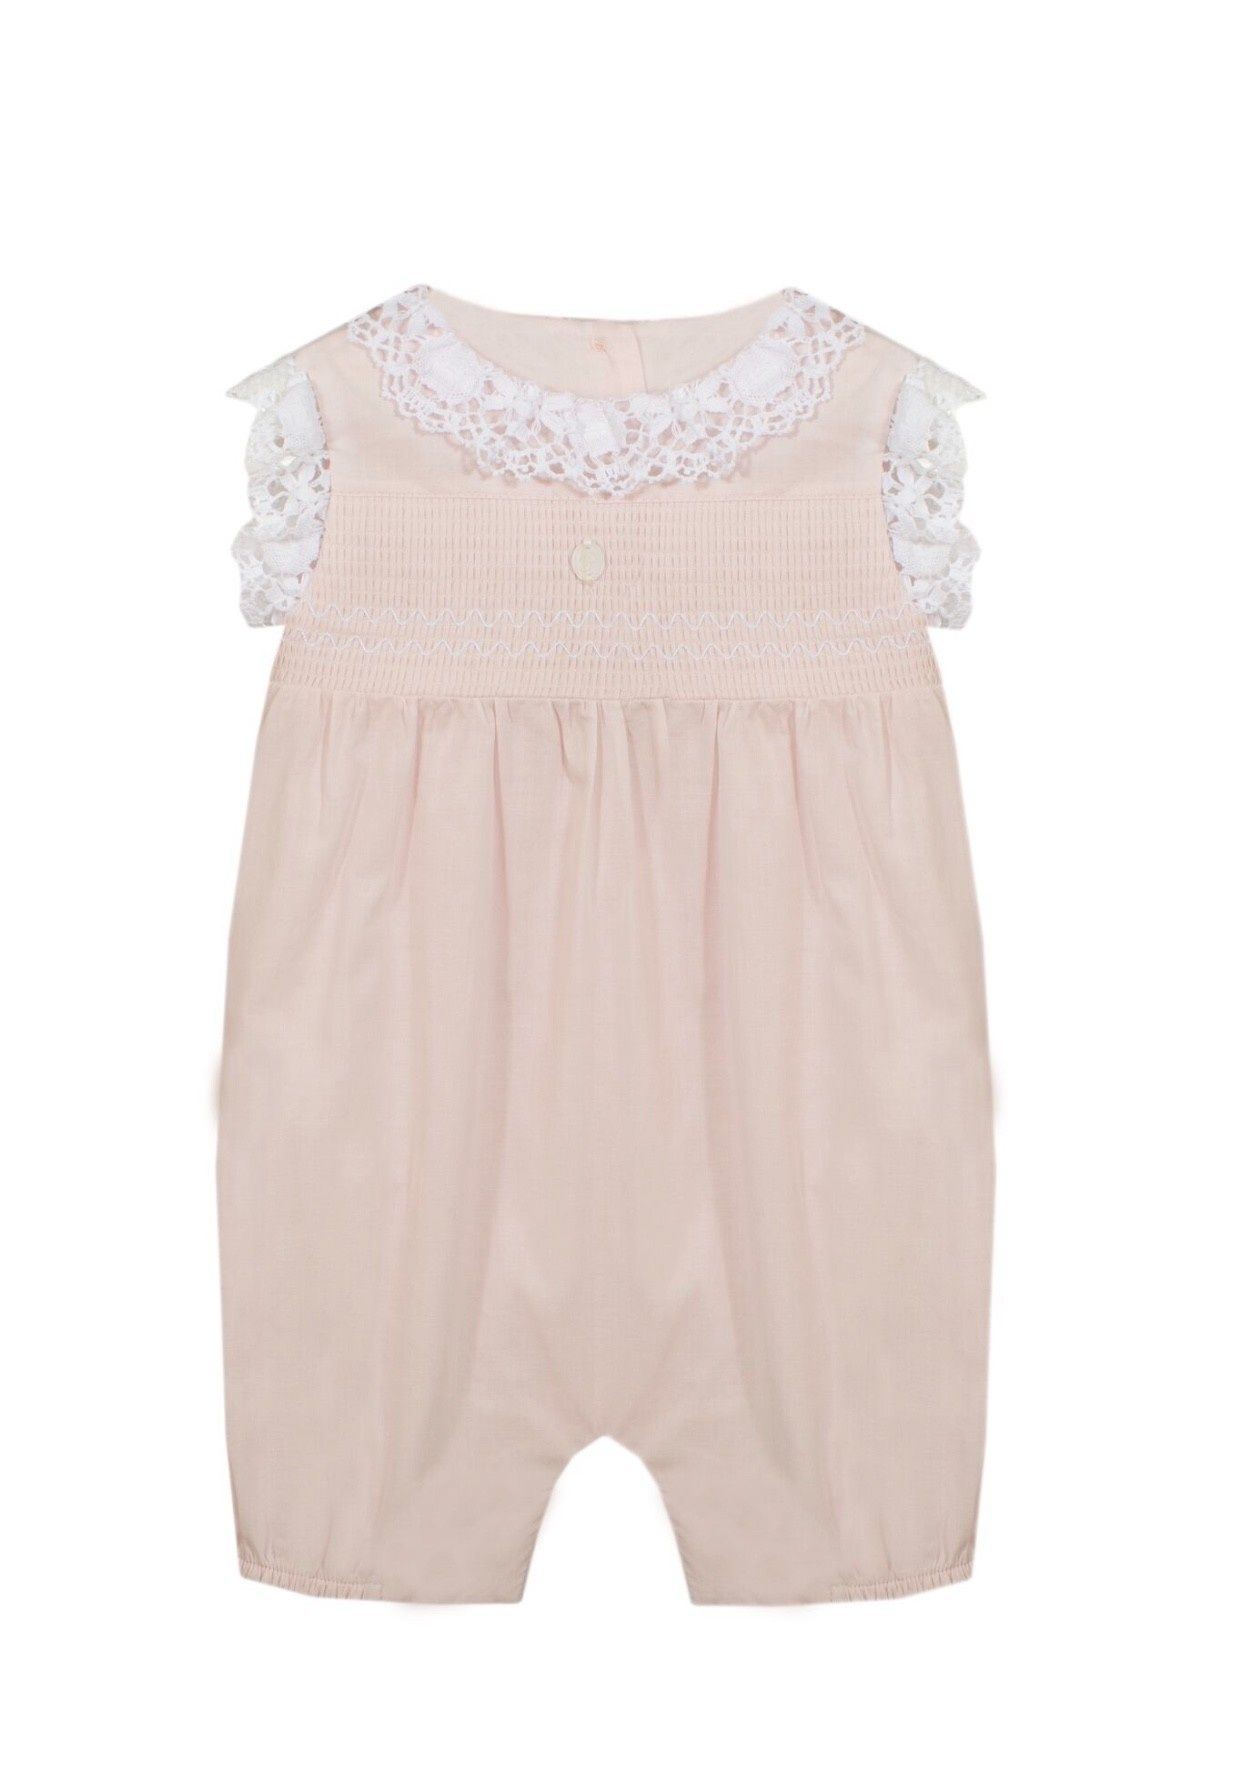 Patachou Patachou Baby 041 Pink Romper with Lace Collar